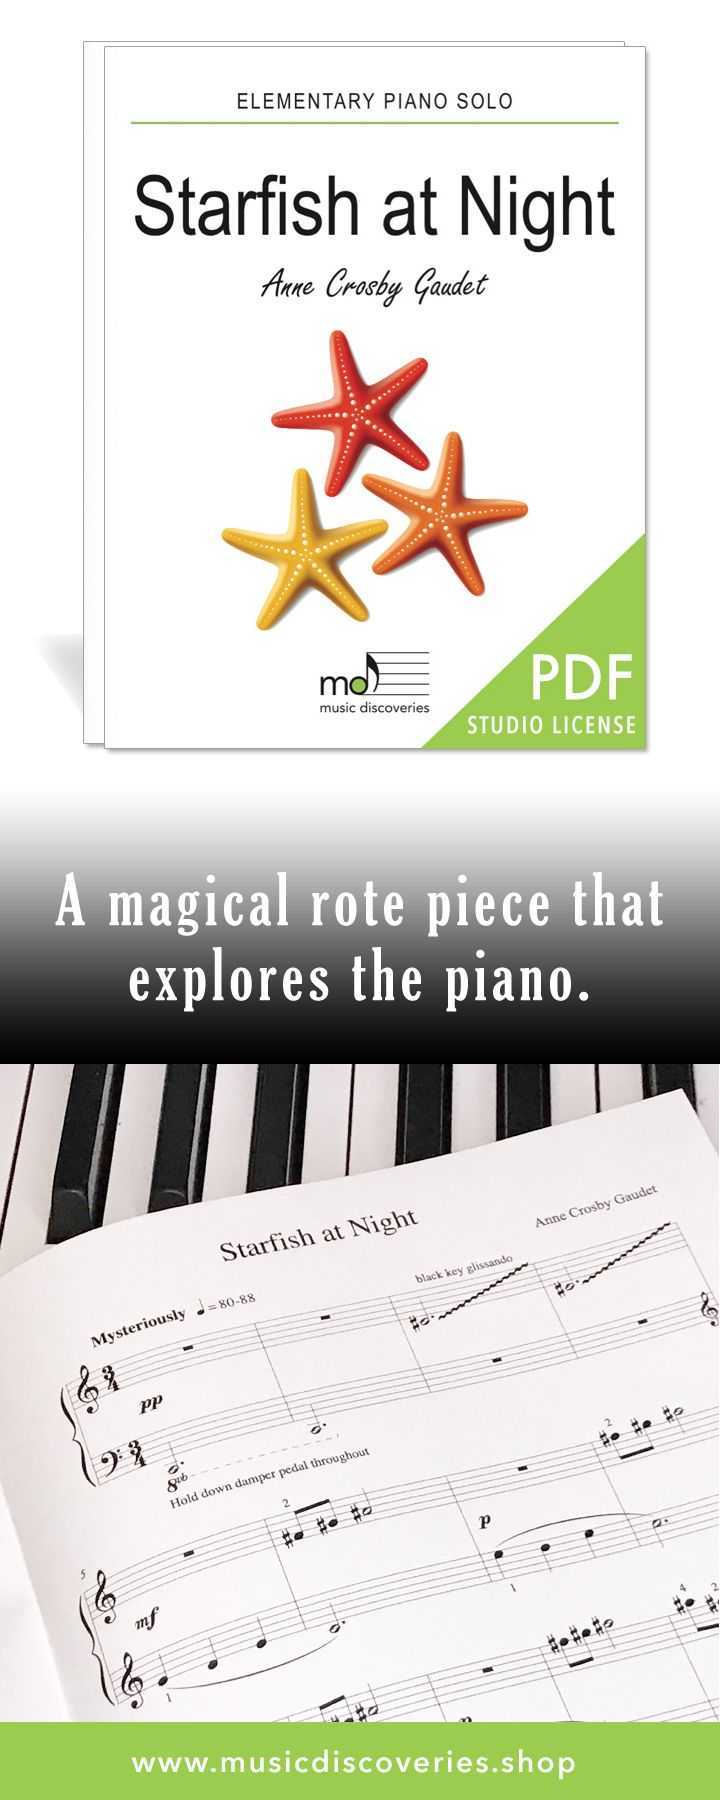 Best 25 a level syllabus ideas on pinterest preschool crosby gaudet was featured in clavier magazine as an elementary level pupil saver currently listed in the royal conservatory of music exam syllabus for fandeluxe Images